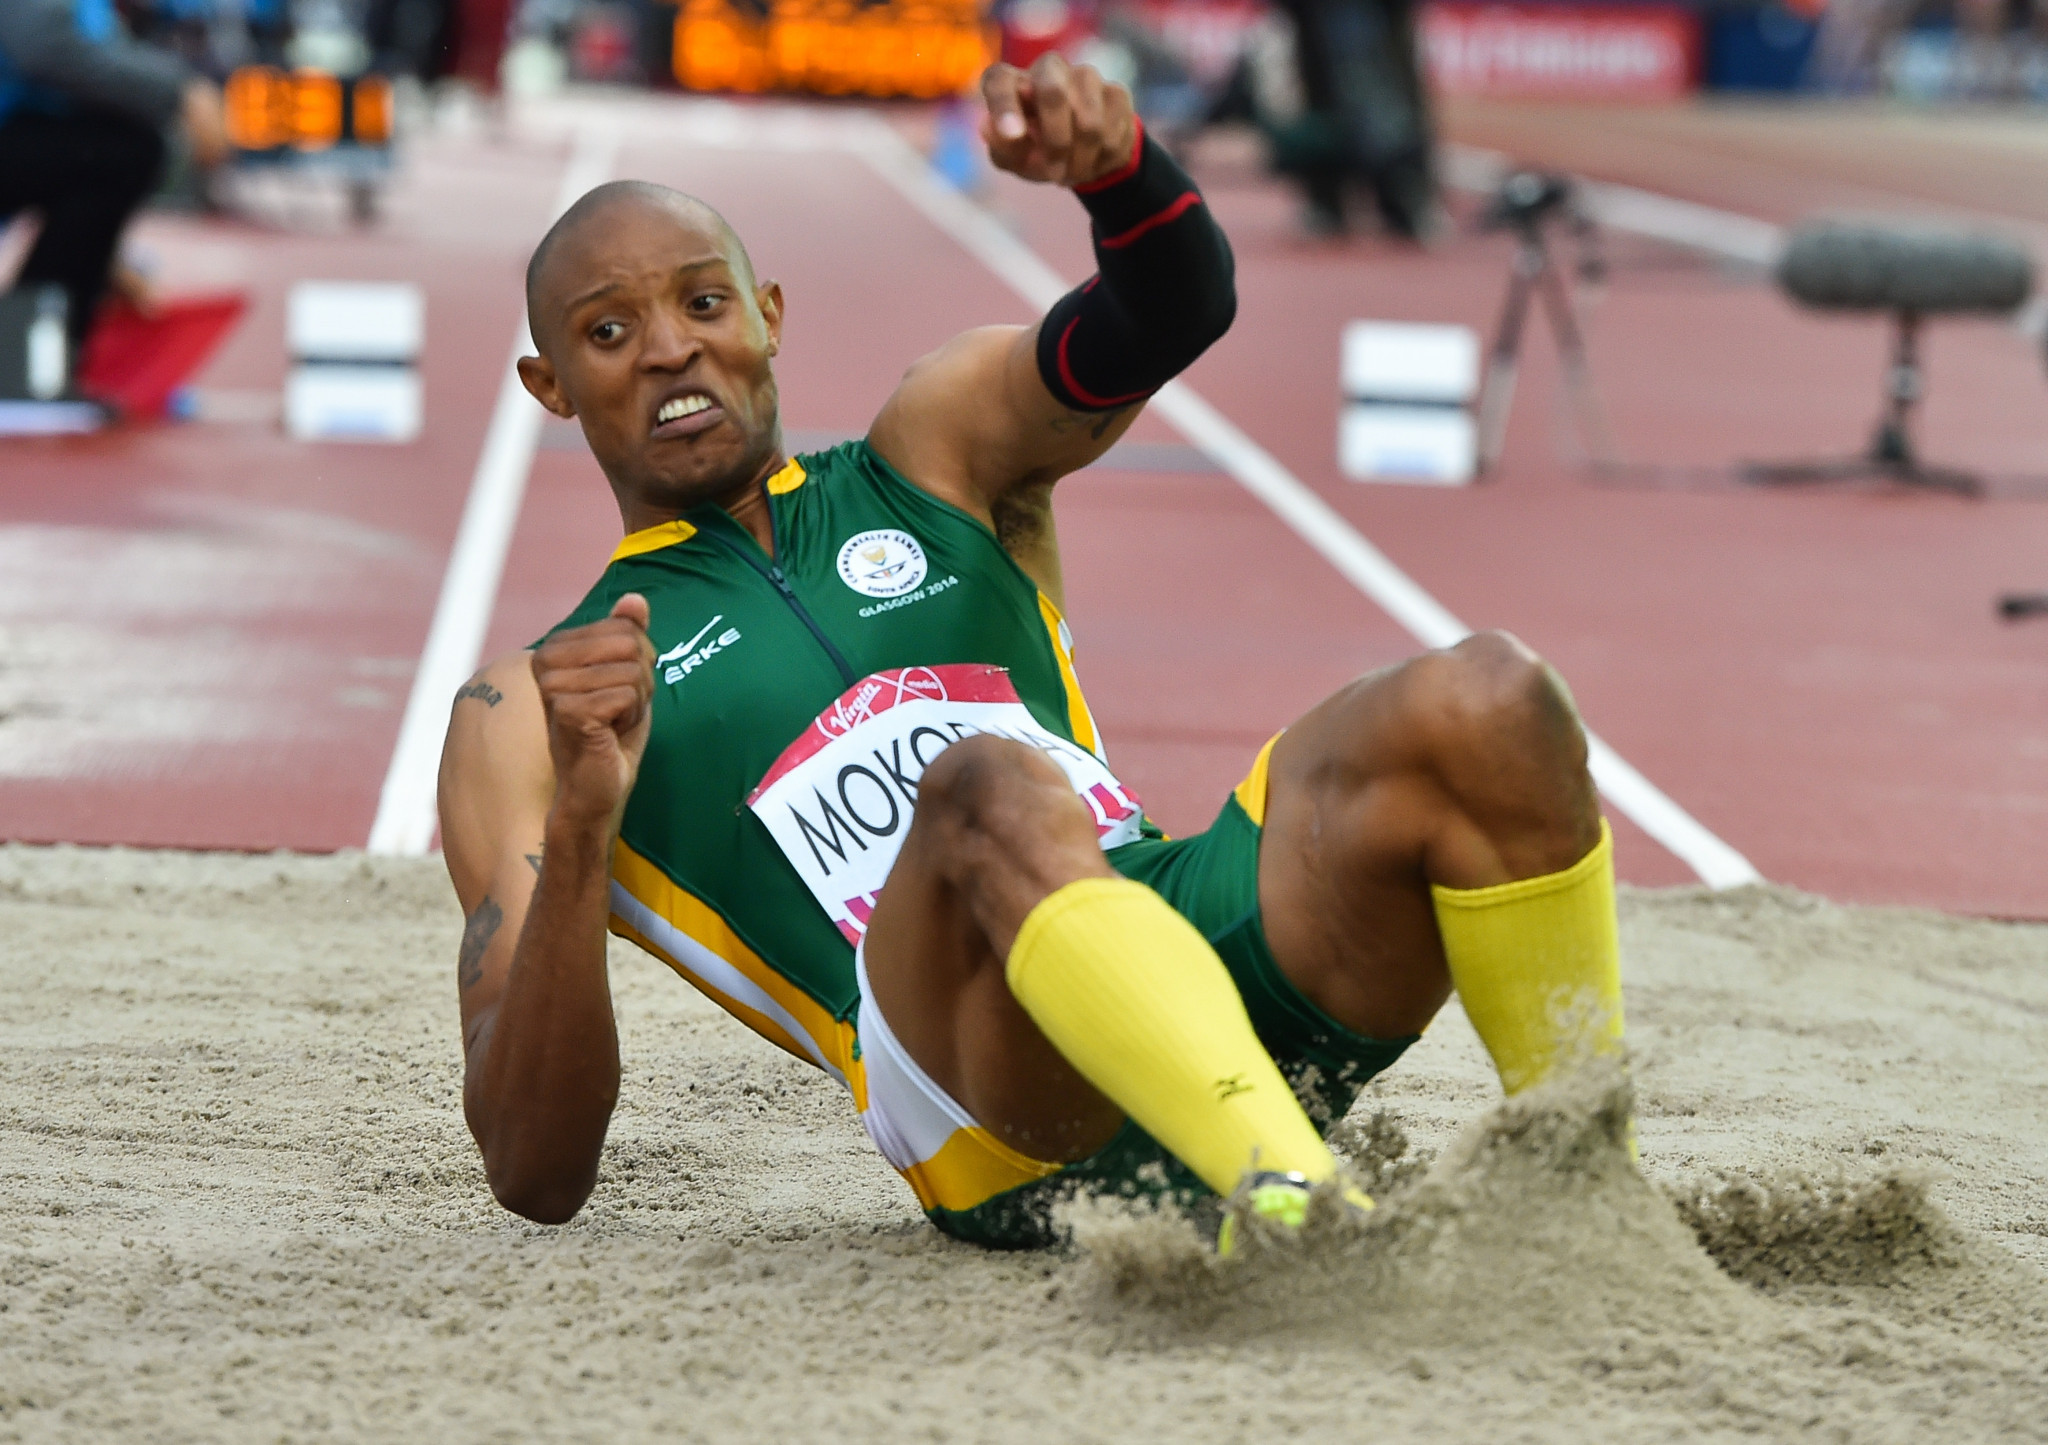 Khotso Mokoena, who won triple jump gold at the Glasgow 2014 Commonwealth Games, is among the athletes to have missed out on a place in South Africa's team for Gold Coast 2018 ©Getty Images